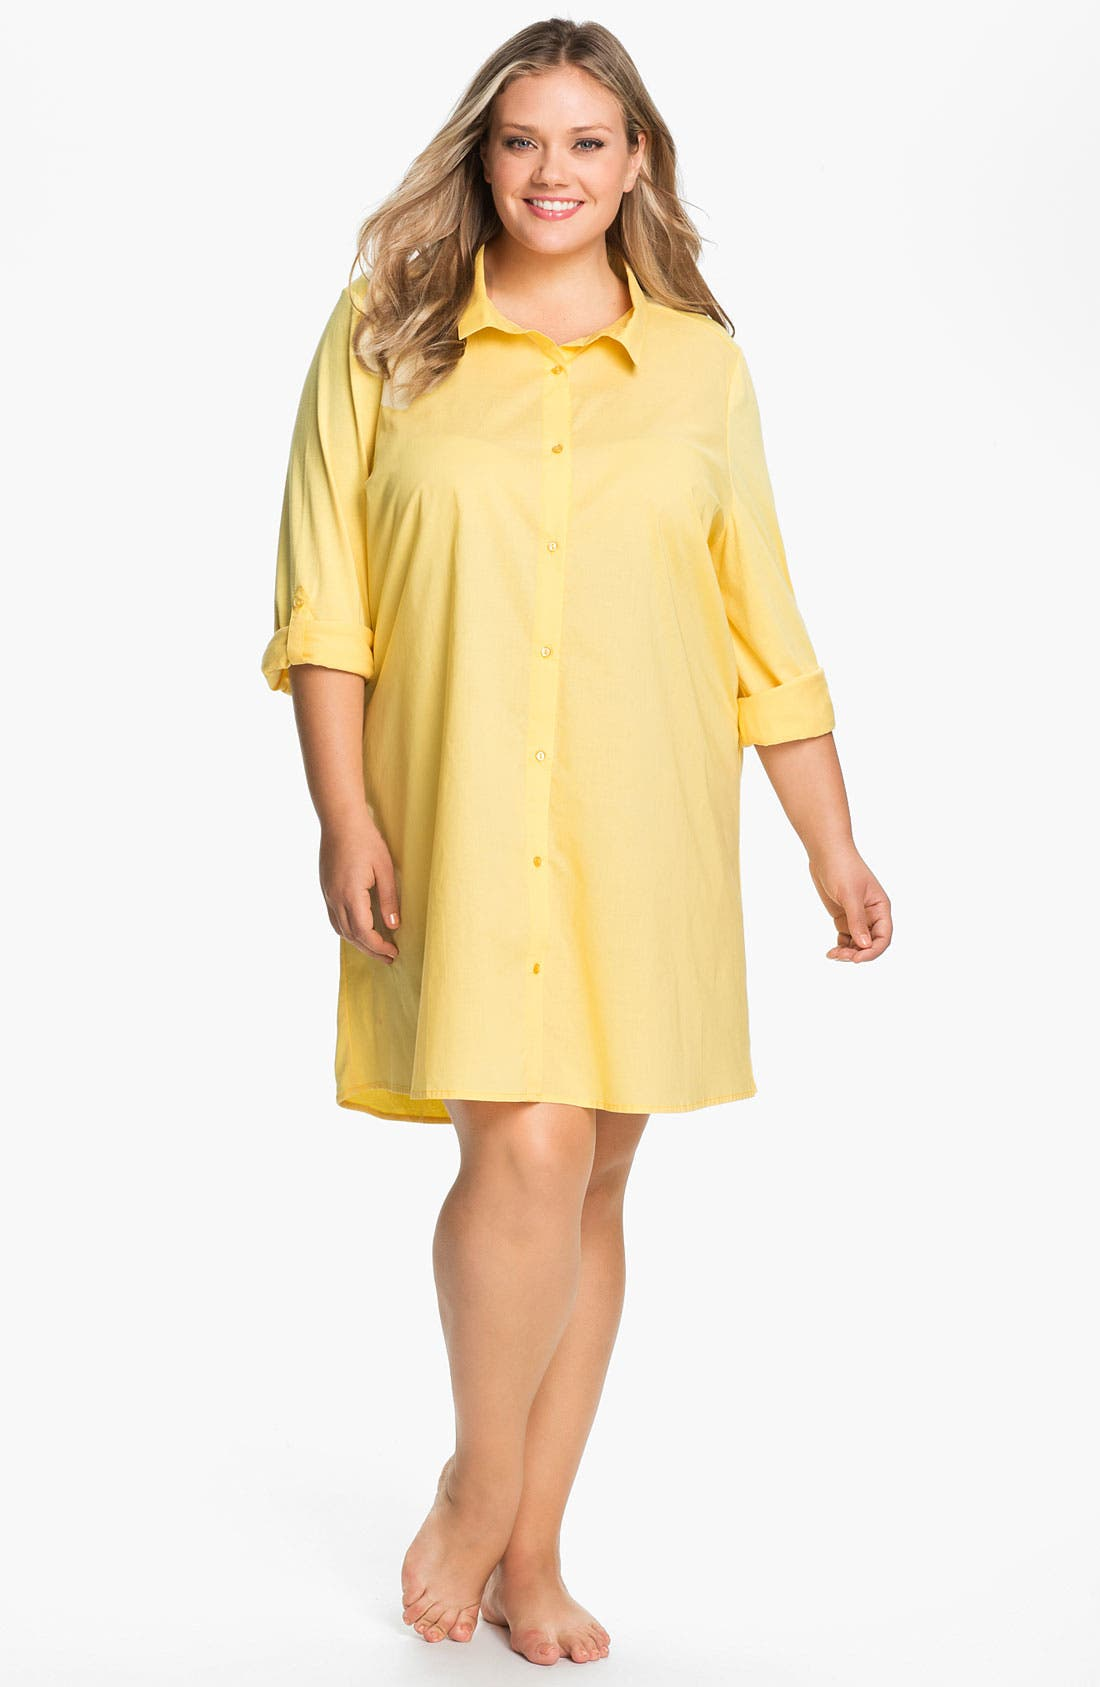 Alternate Image 1 Selected - Shimera 'Mix It Up' Nightshirt (Plus Size)